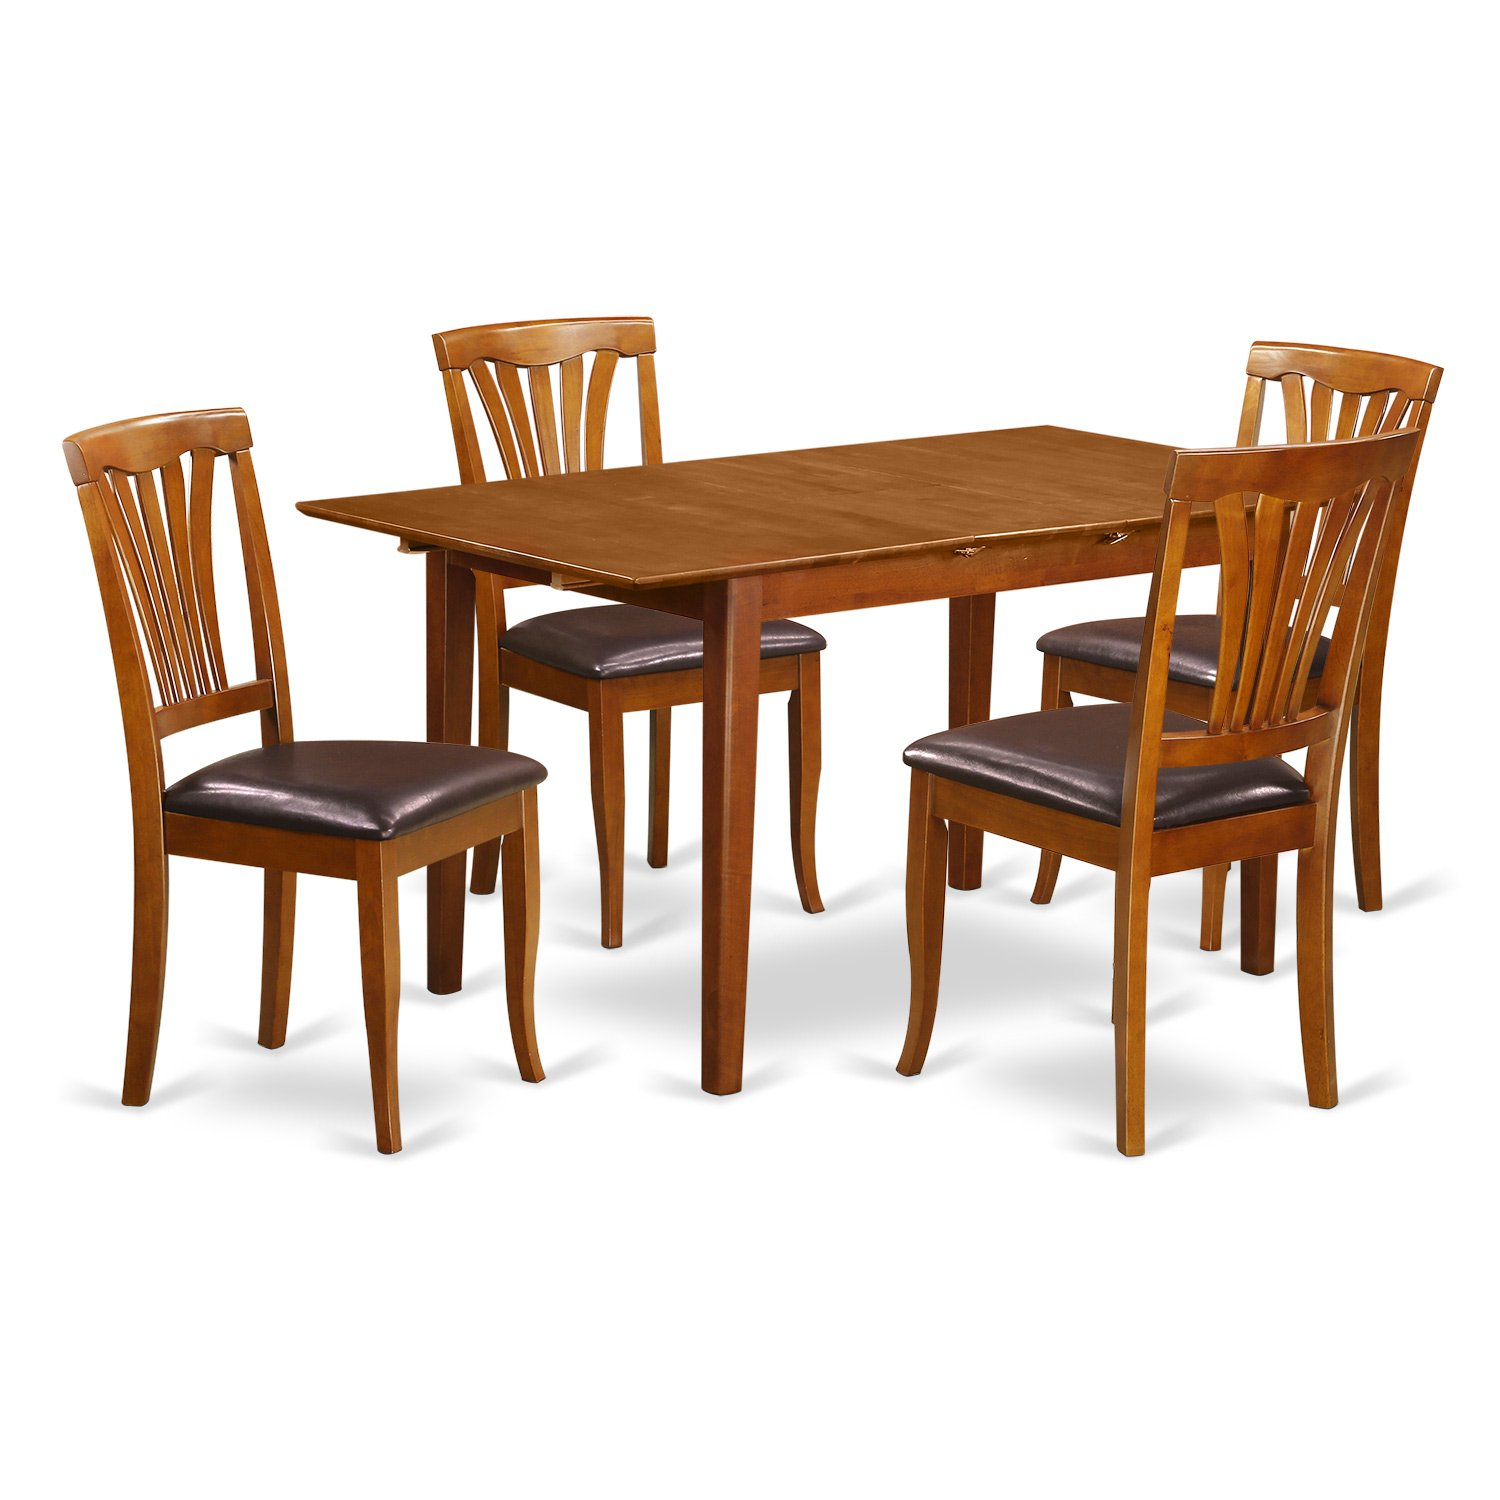 PSAV5-SBR-LC 5 PC small Kitchen Table set - Table with Leaf and 4 Chairs  for Dining room